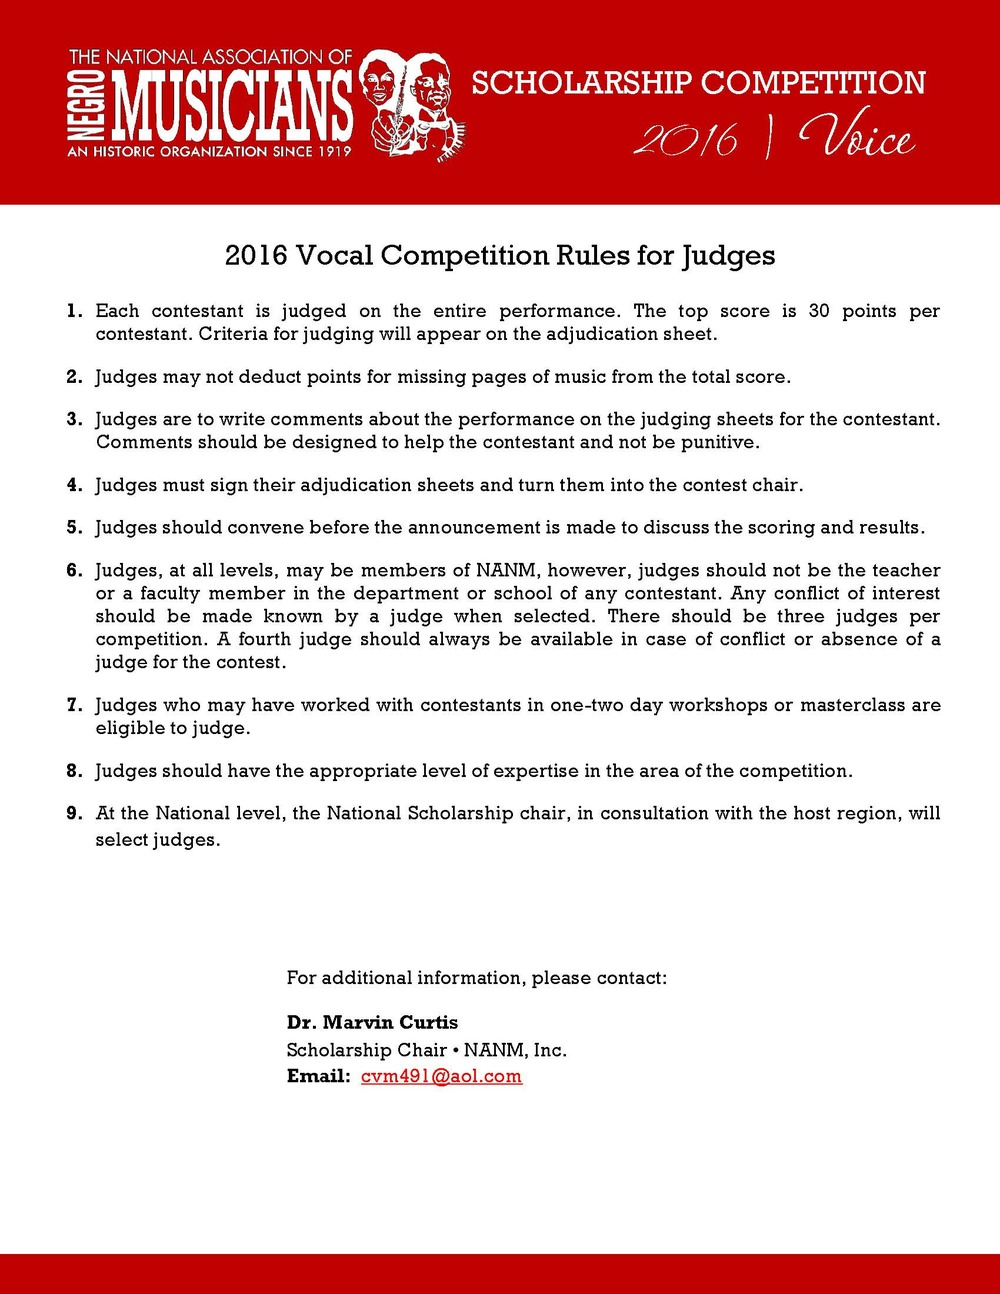 2016-nanm-scholarship-rules-for-judges.jpg